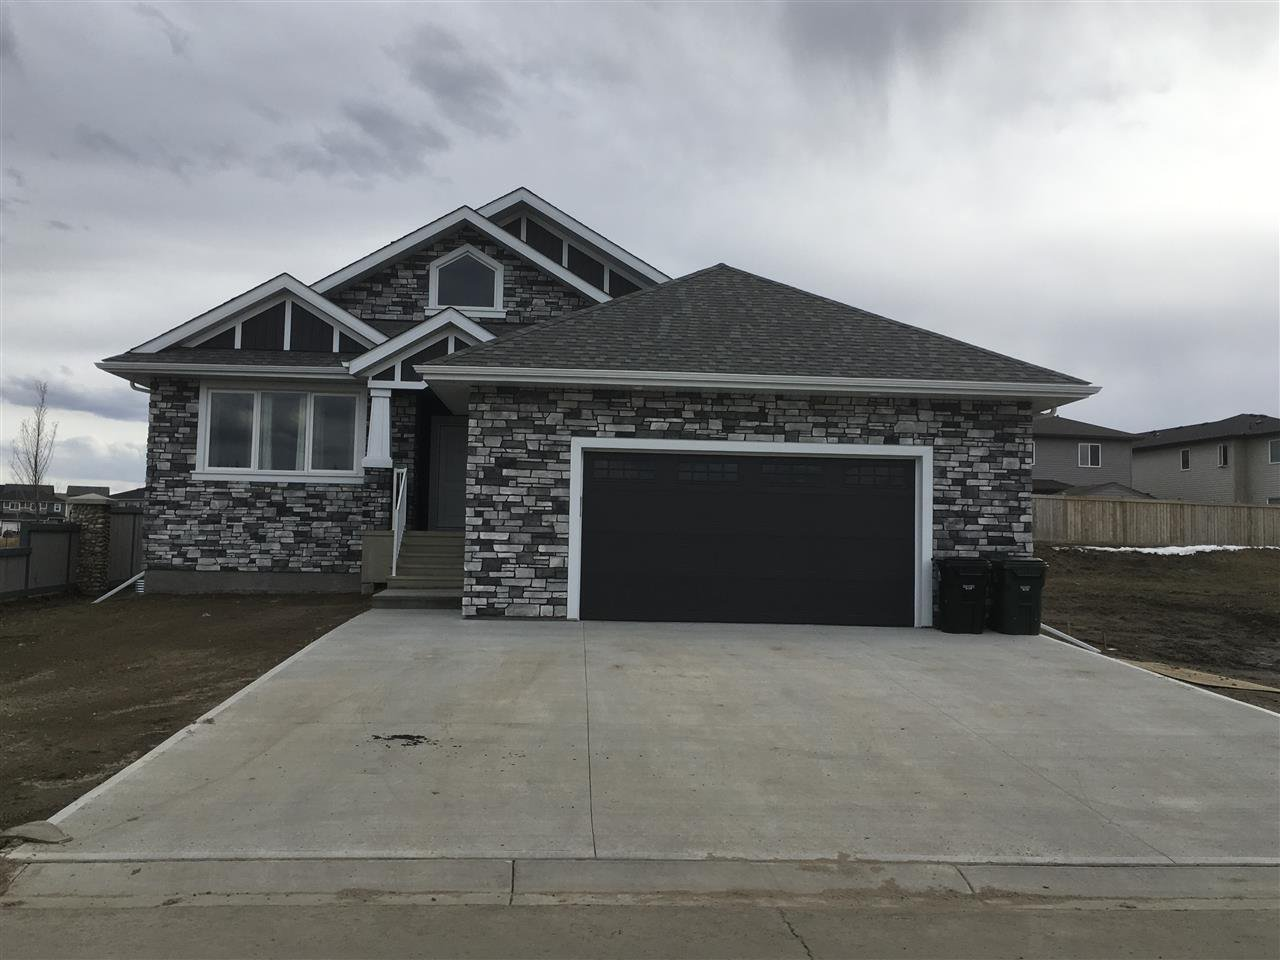 Main Photo: 95 LILAC Bay: Spruce Grove House for sale : MLS®# E4151271